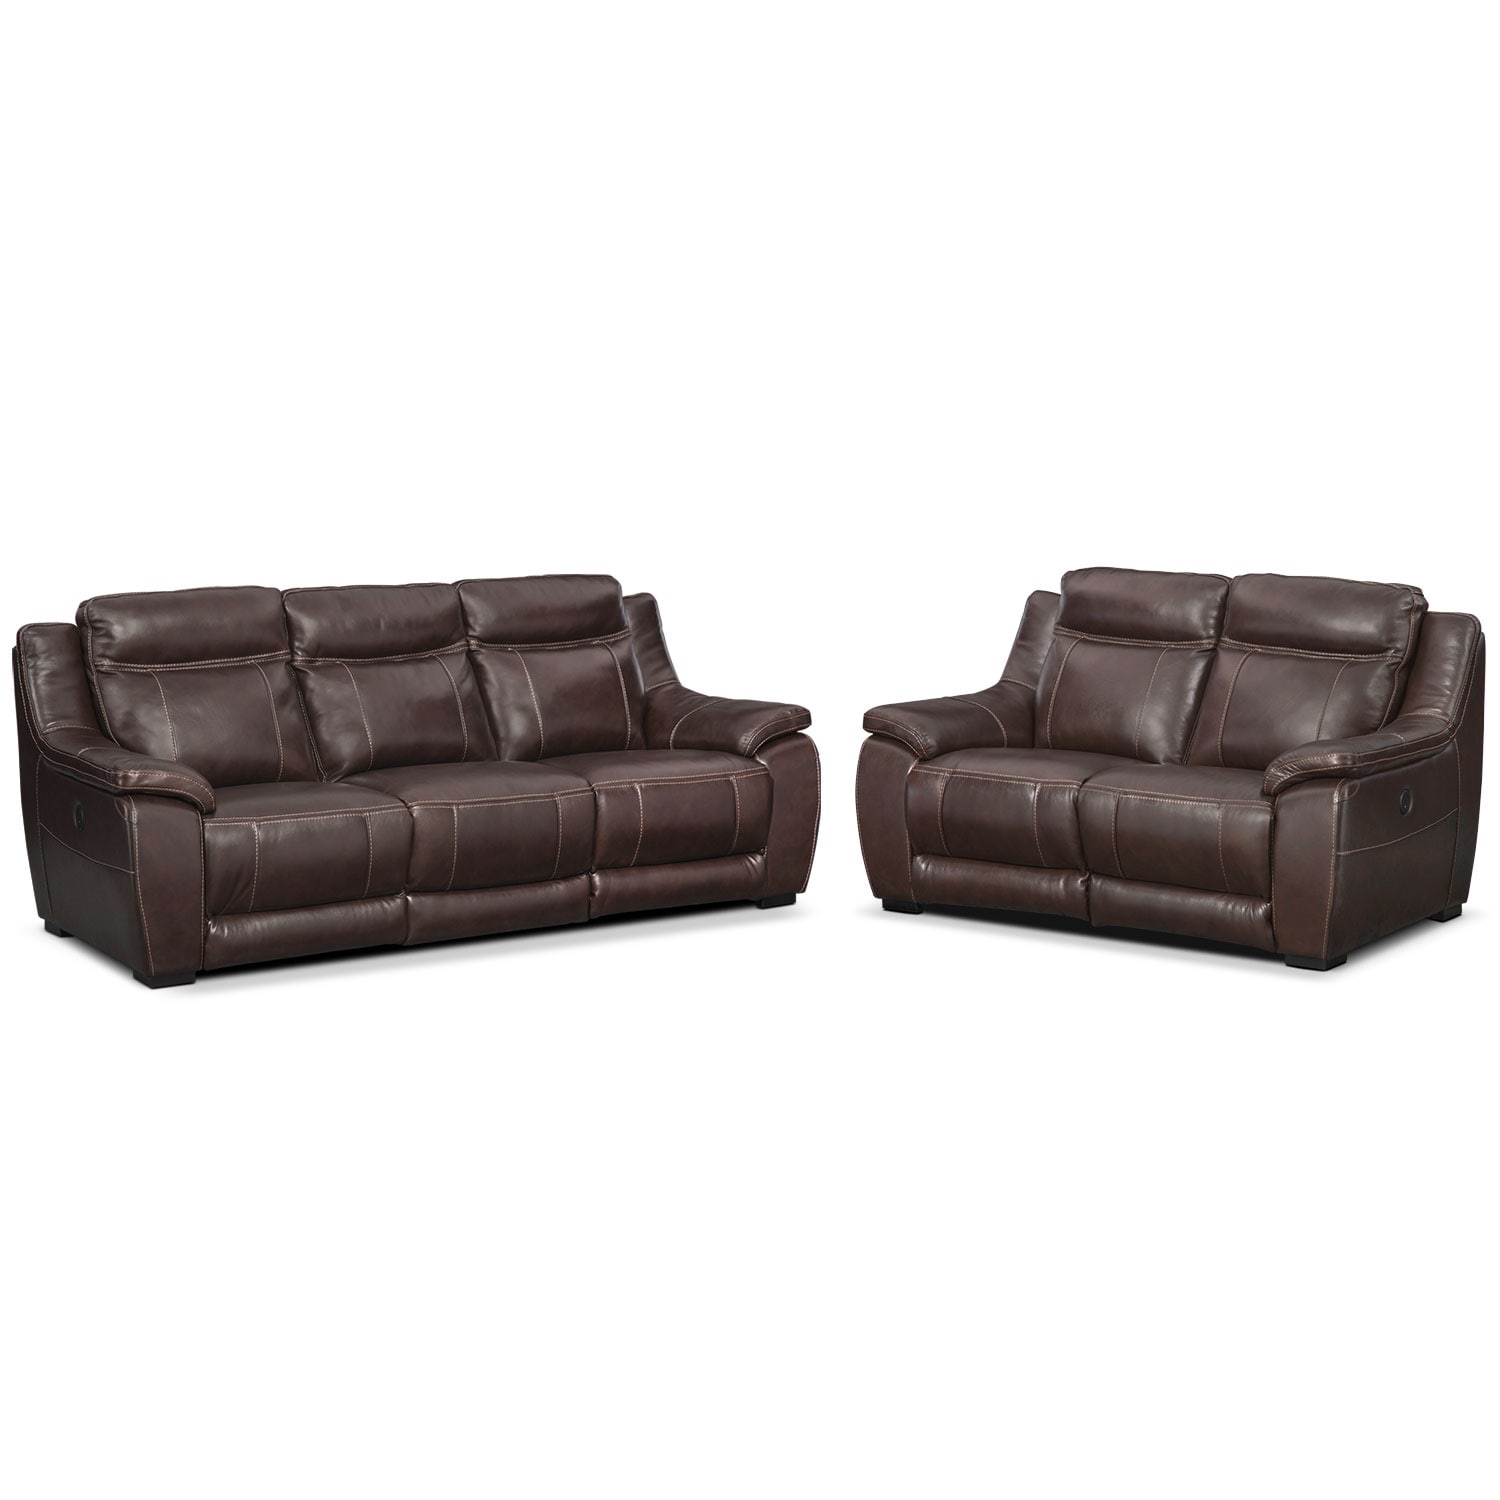 Living Room Furniture - Lido Power Reclining Sofa and Reclining Loveseat Set - Brown